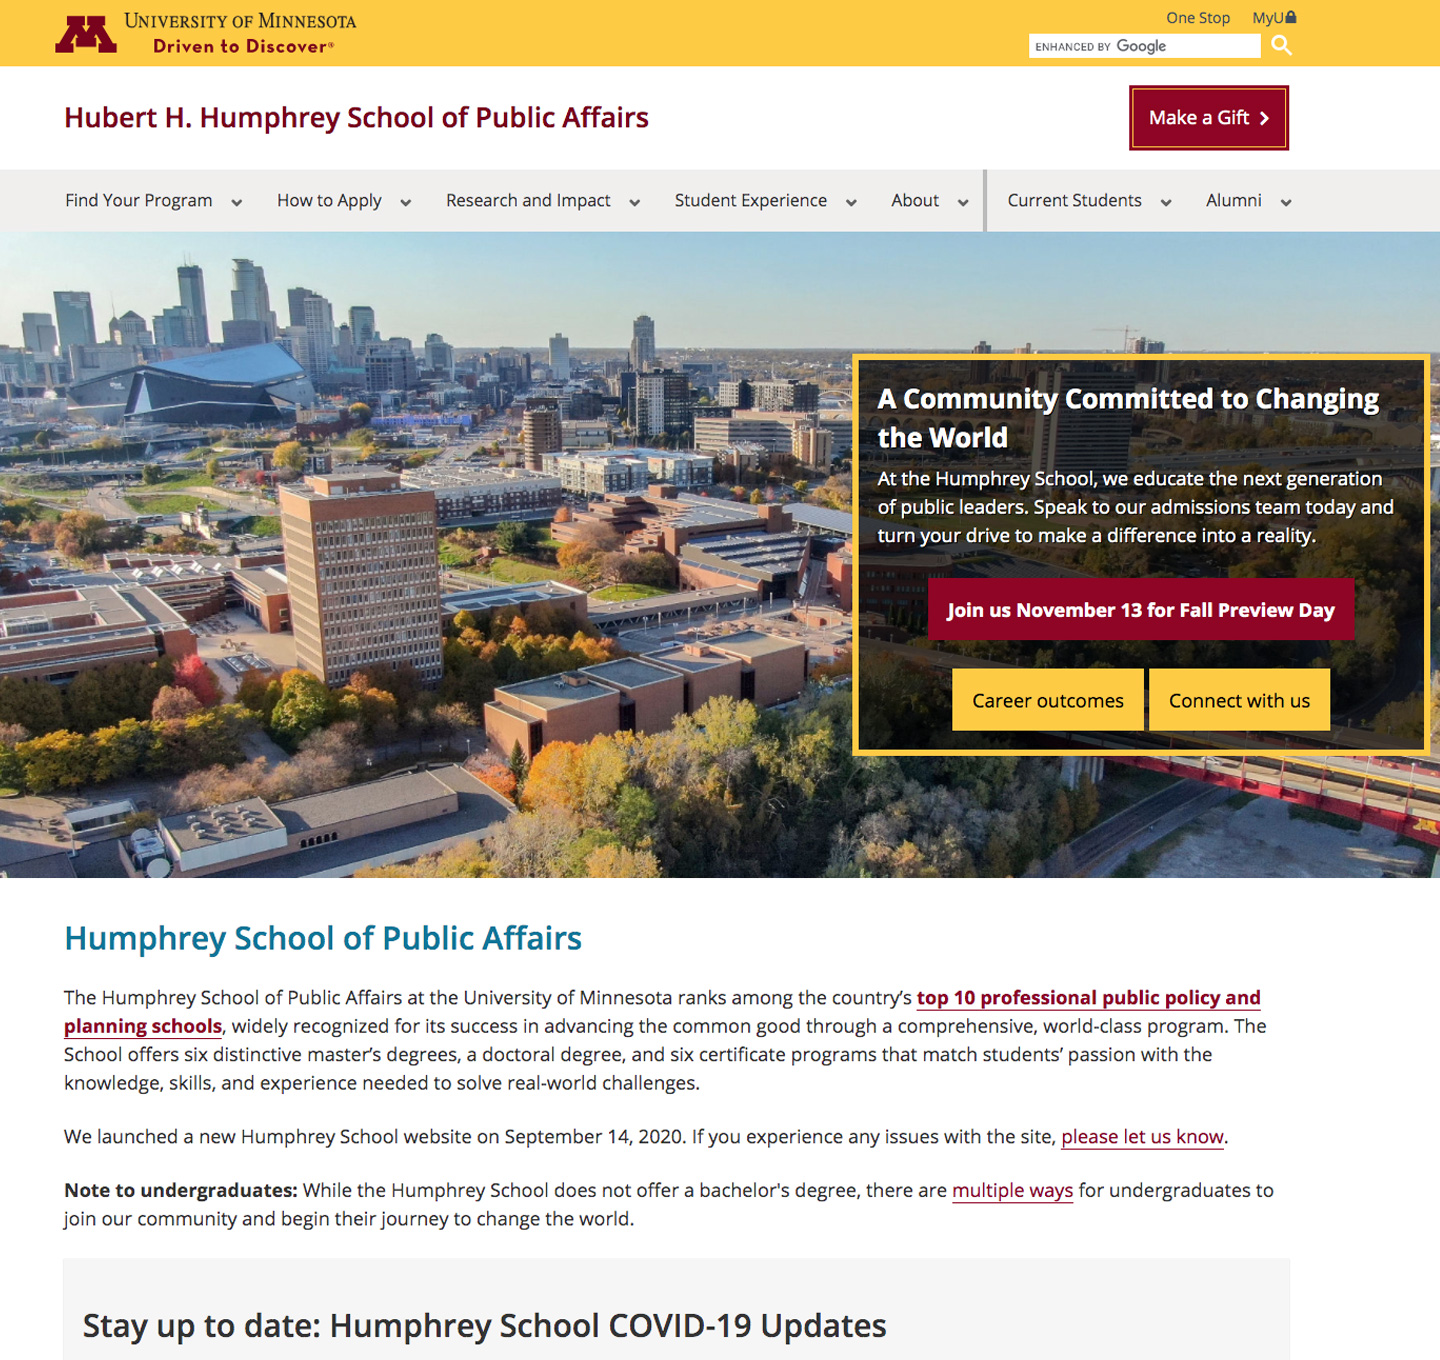 Hubert H. Humphrey School of Public Affairs website screenshot